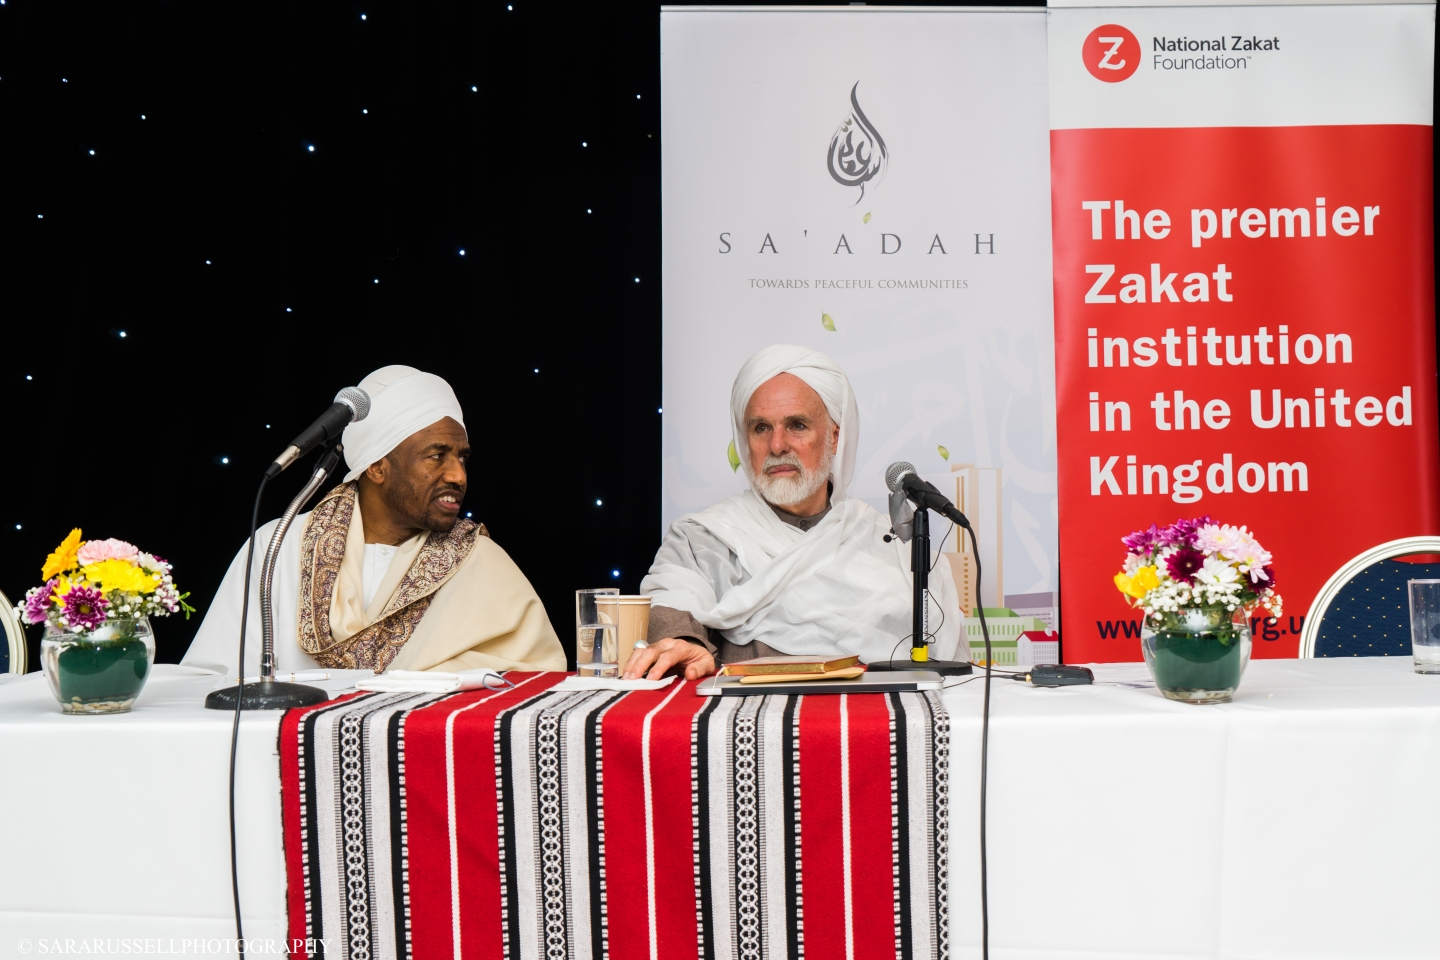 Shaykh Ahmed Babakir (left) and Dr Umar (right) at The Atrium, London delivering a talk on Philanthropy in Islam